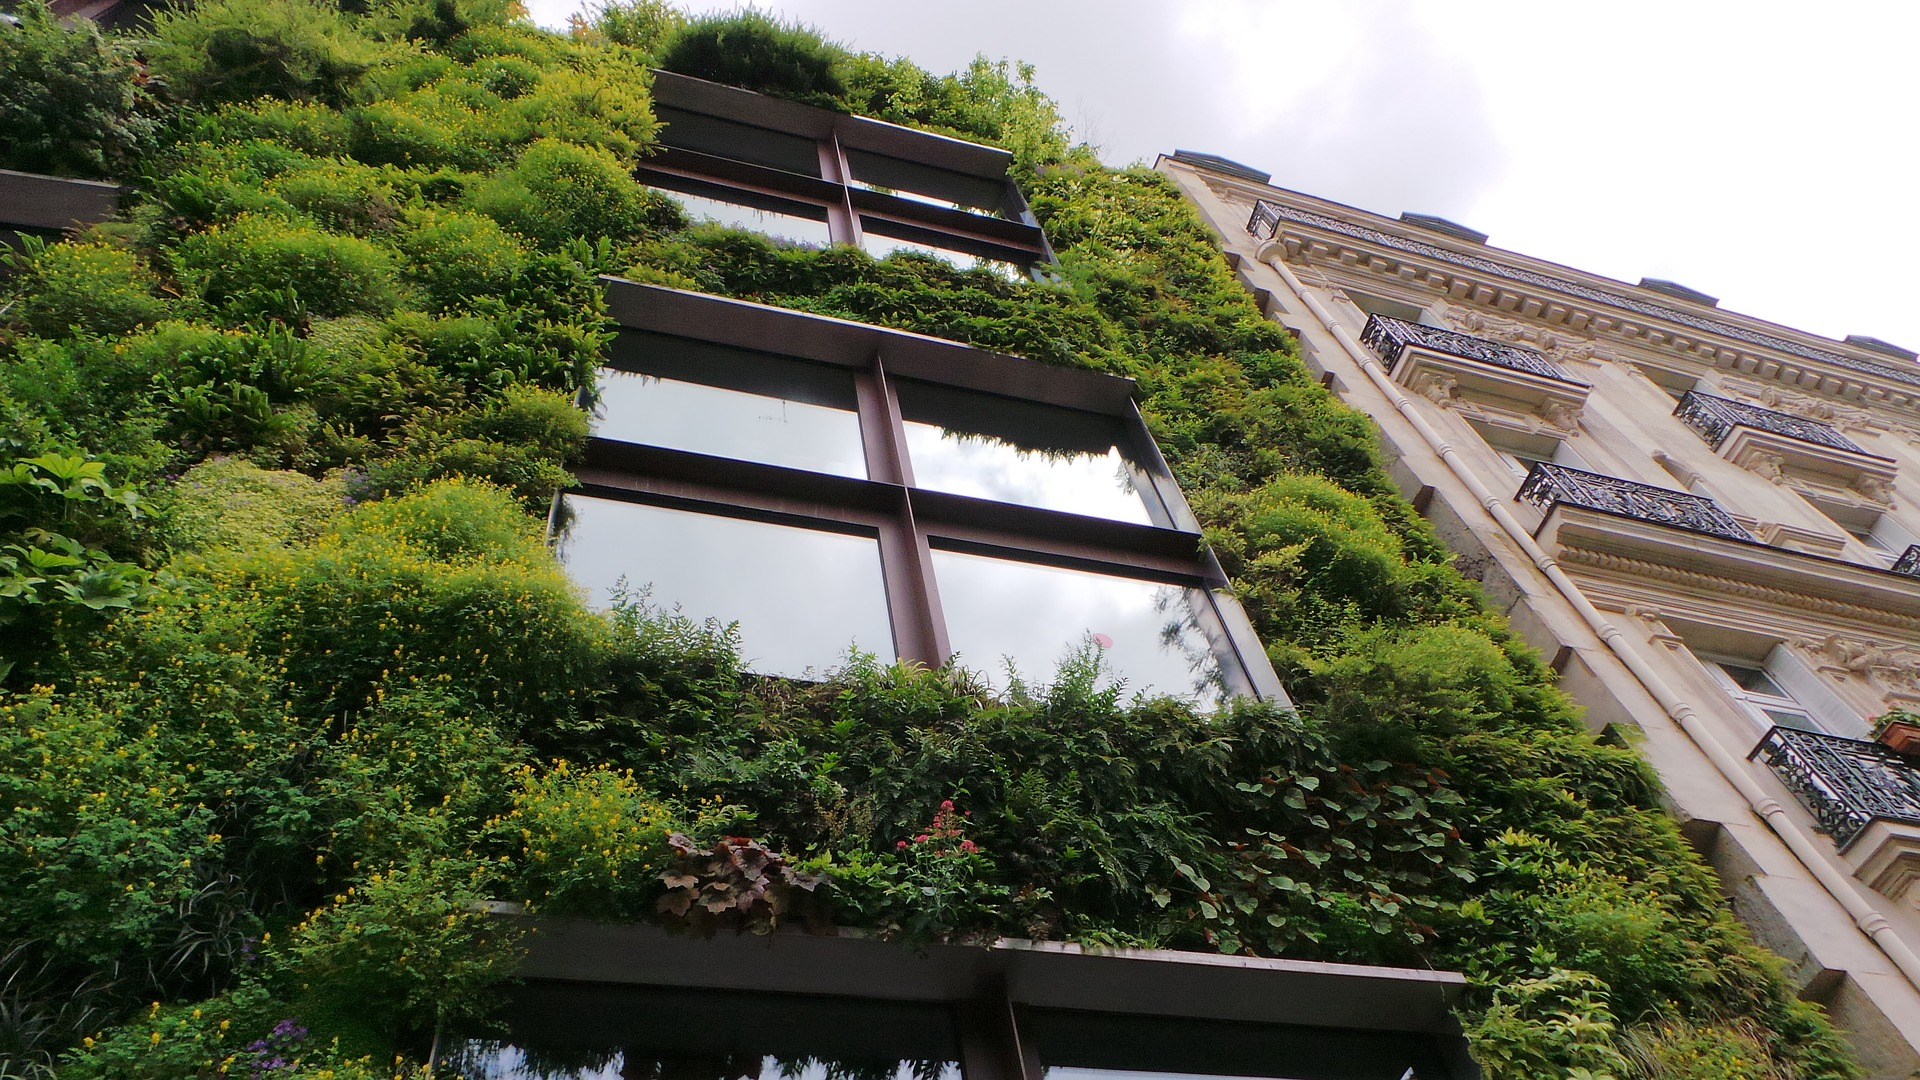 Beautiful Pictures of Urban Vegetable Gardens to Inspire Your Own